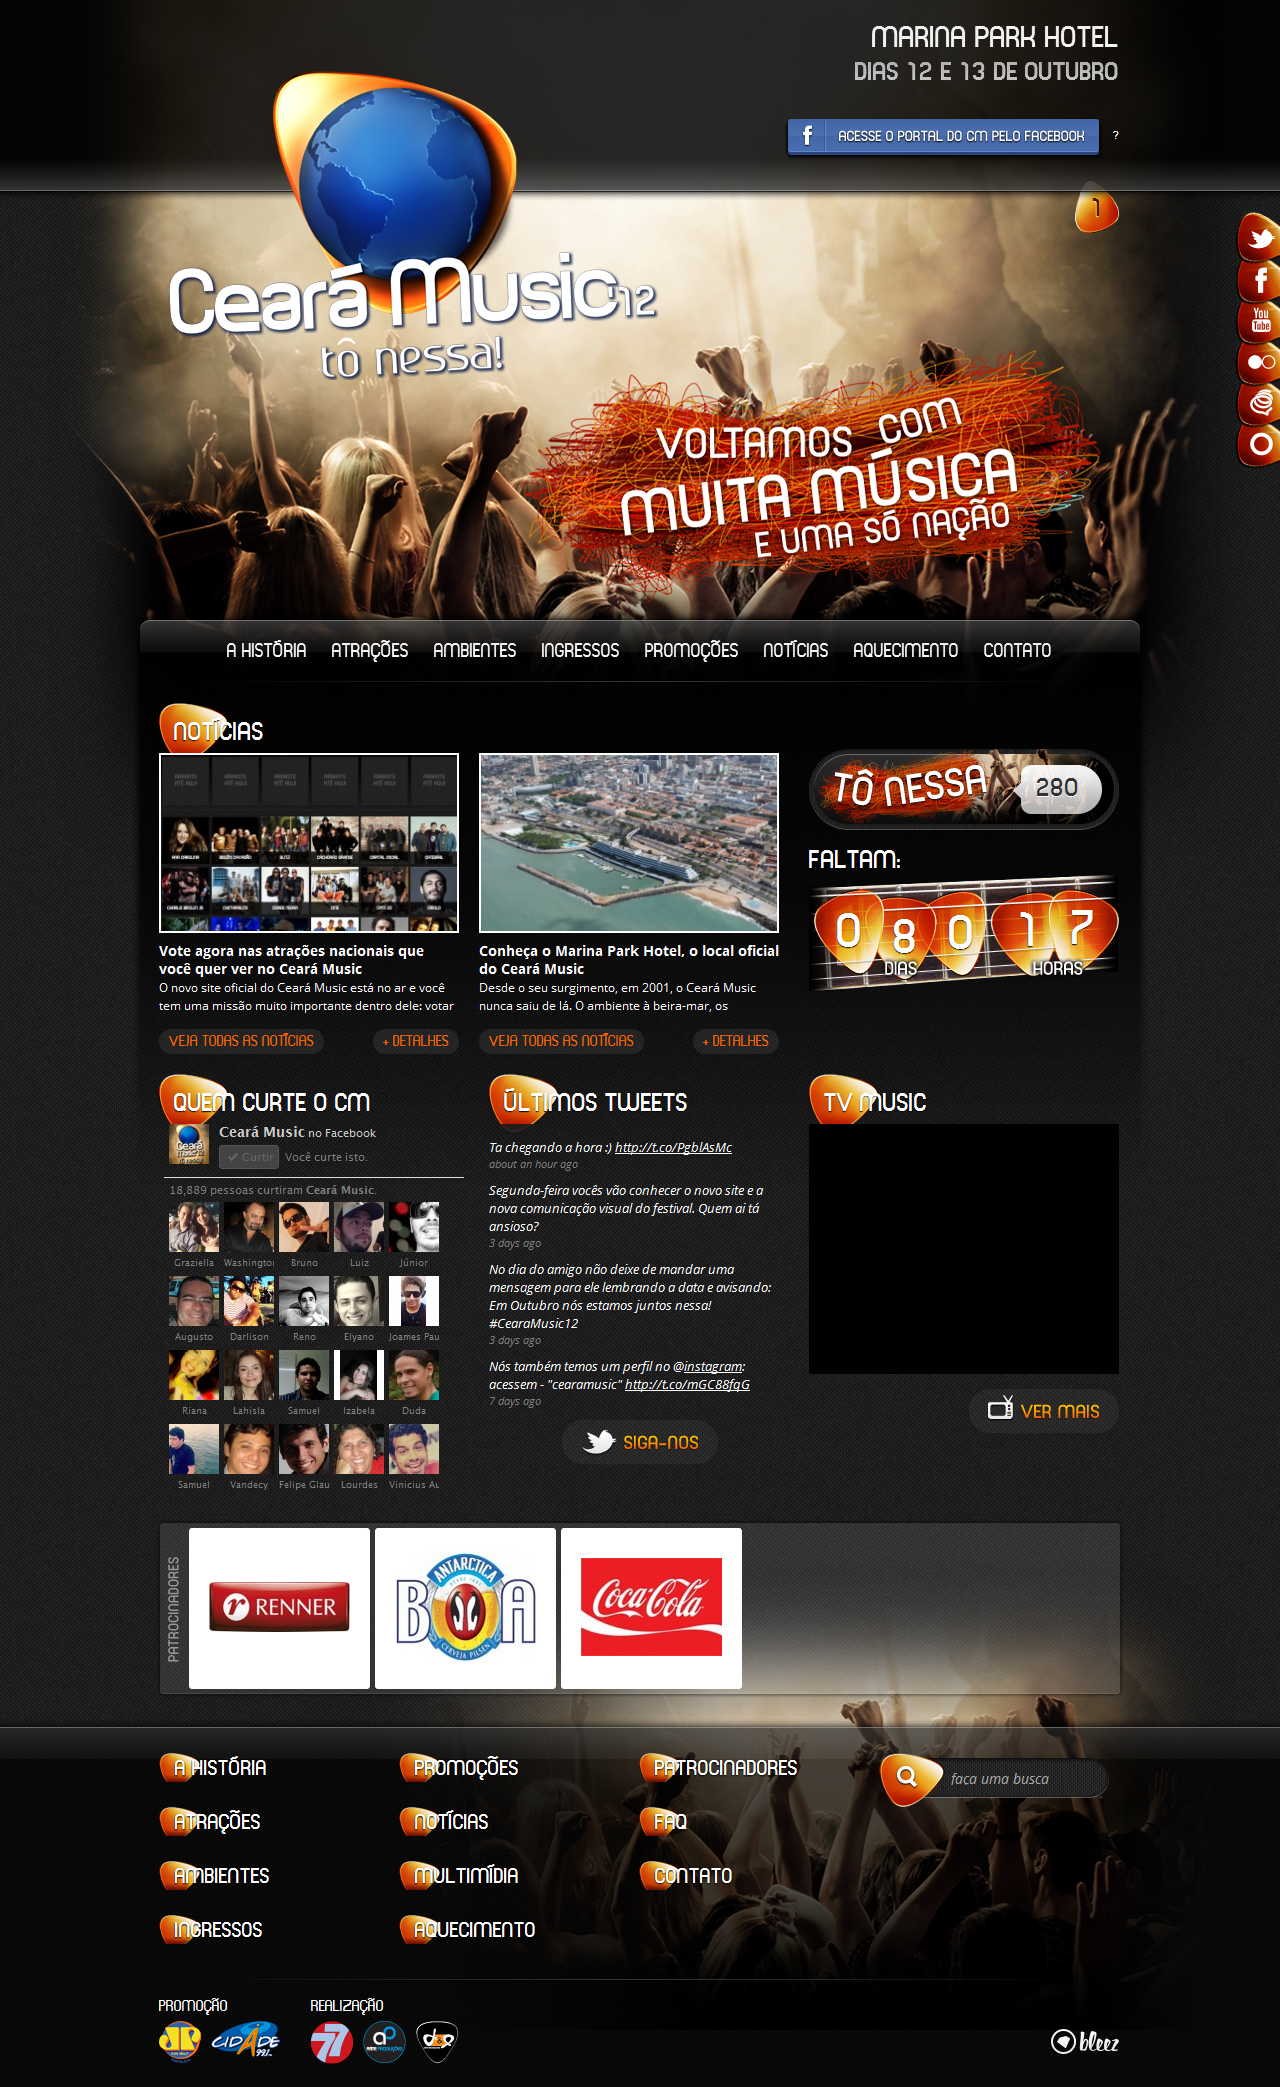 Bleez lança site do Ceará Music 2012